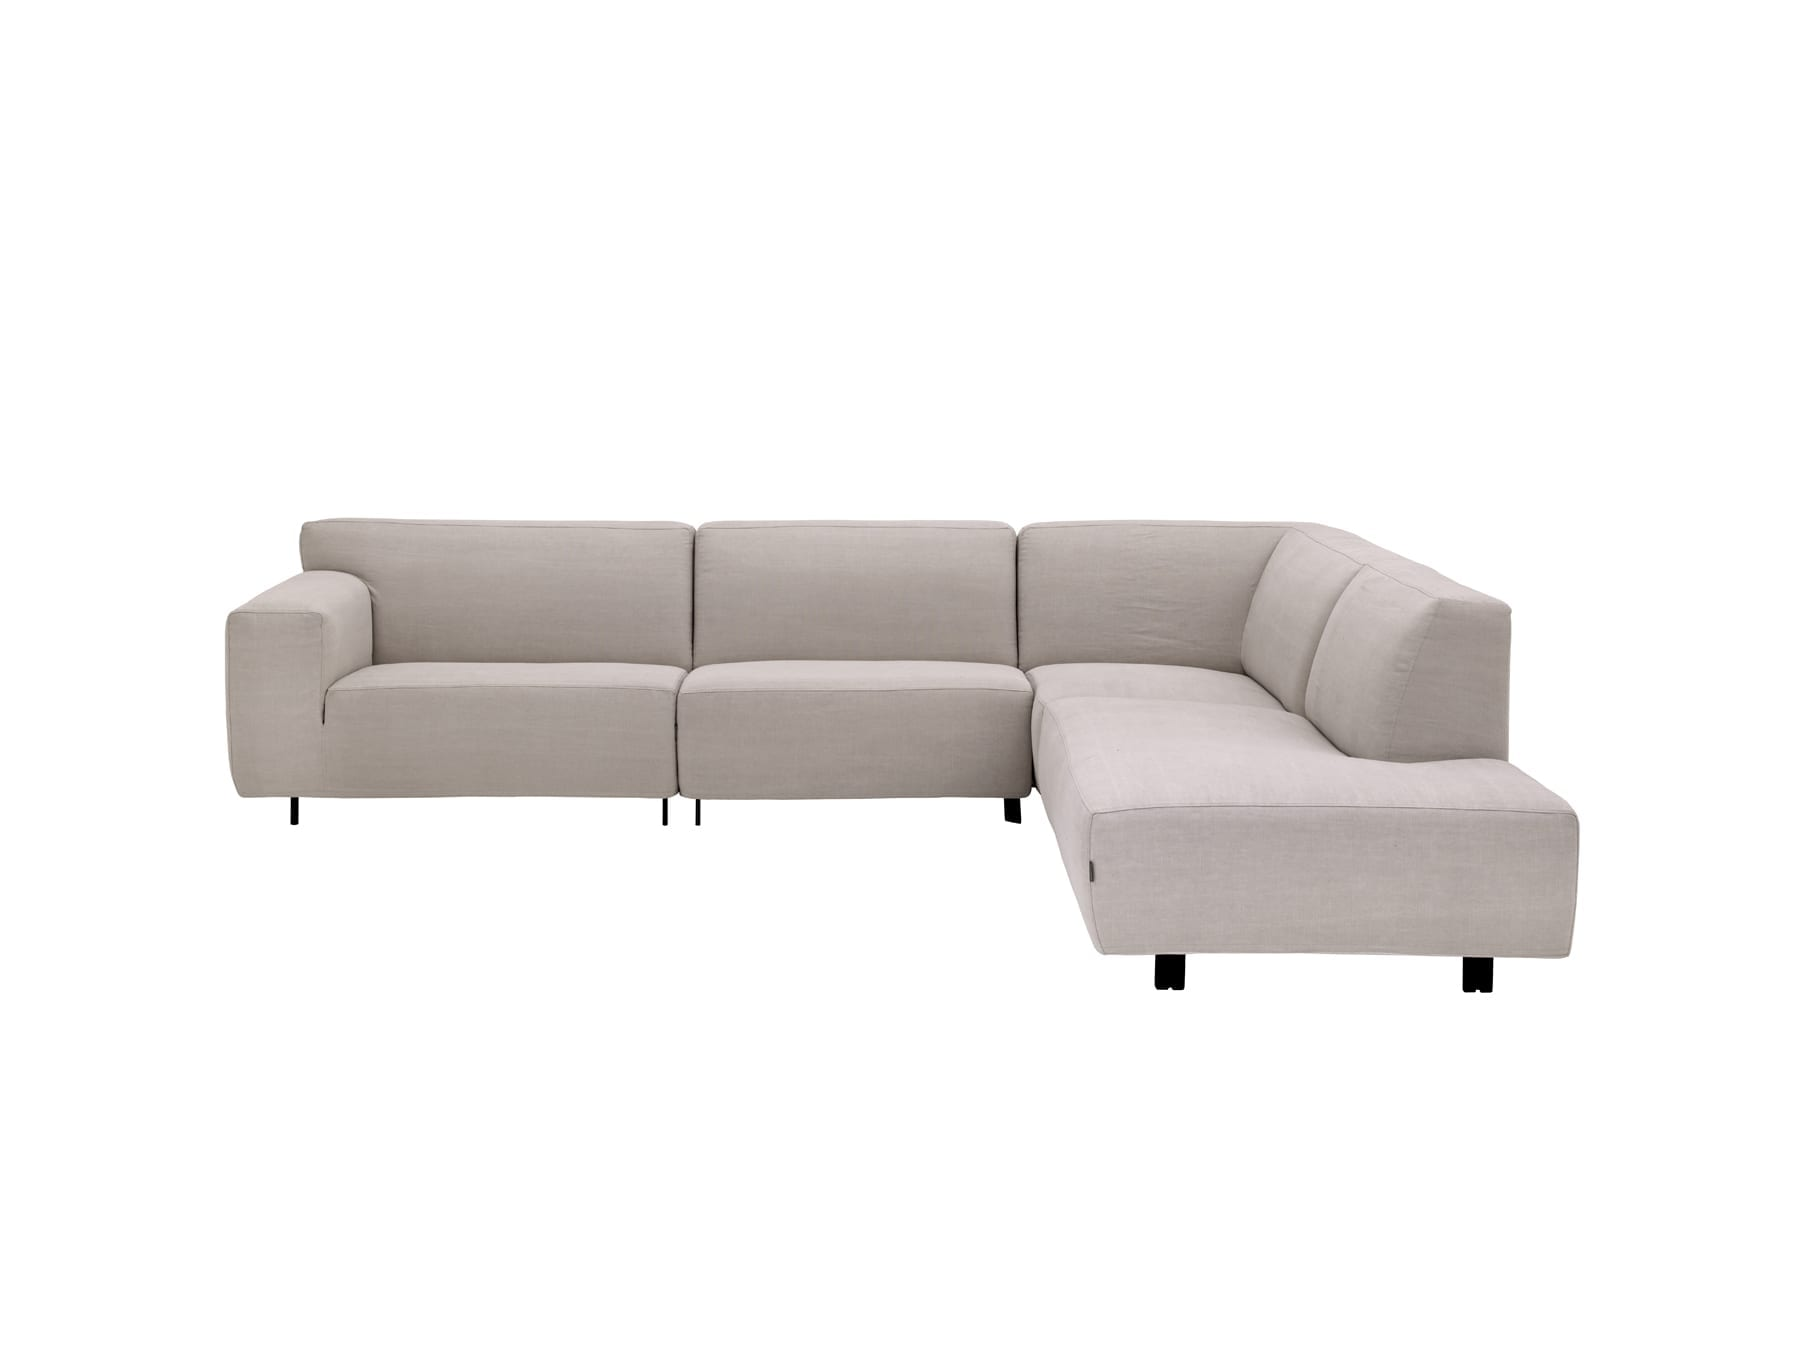 Sofa Lounge Nz Furninova Vesta Modular Suite Mckenzie And Willis